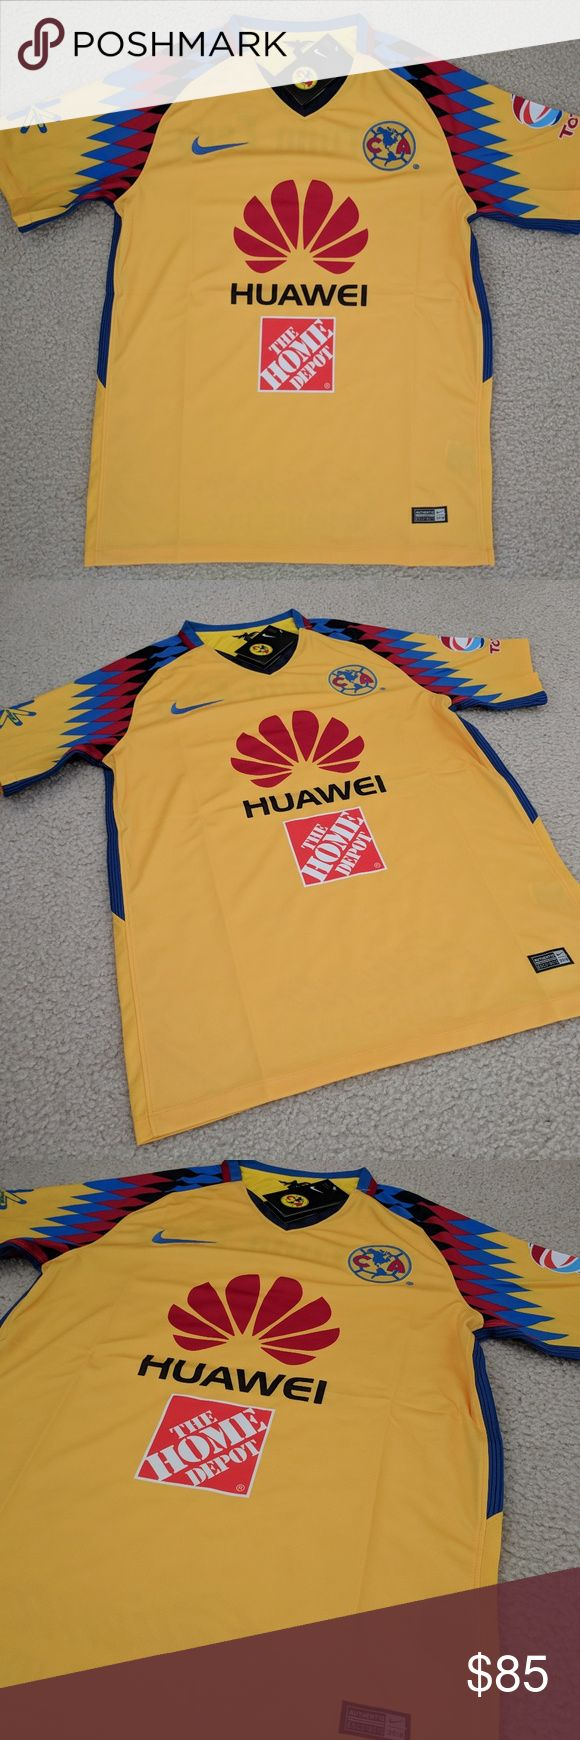 Nike Club America 3rd JERSEY 2018 Chivas Jersey Nike Club America 3rd JERSEY 2018 Chivas Tigres Rayados Rusia Mexico Cruz azul  This is the normal jersey not the players jersey. Nike Shirts